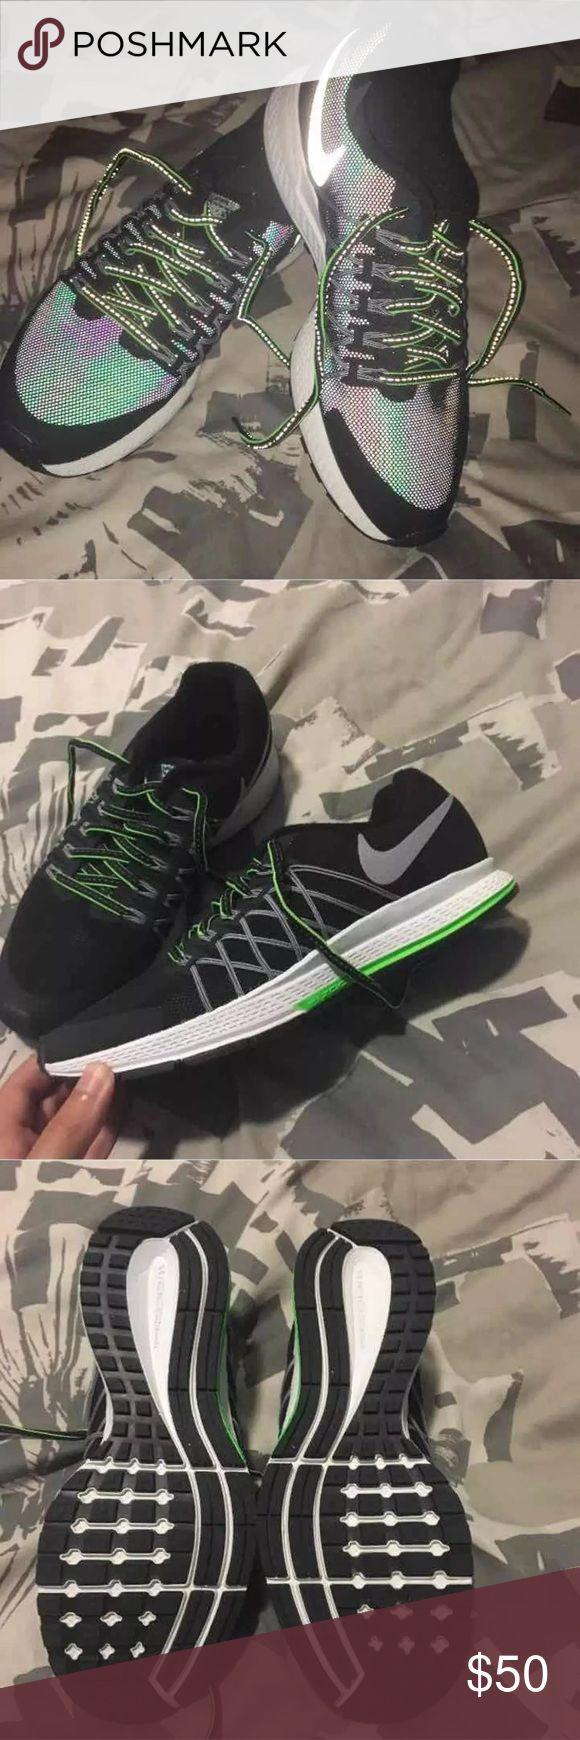 Nike Zoom Pegasus Shoes Size 6.5Y which is the same as a women's 8 according to the size chart on the Nike website.  H2O Repel, NIKE ZOOM PEGASUS 32 Black, white, green First and last picture taken with flash Nike Shoes Athletic Shoes